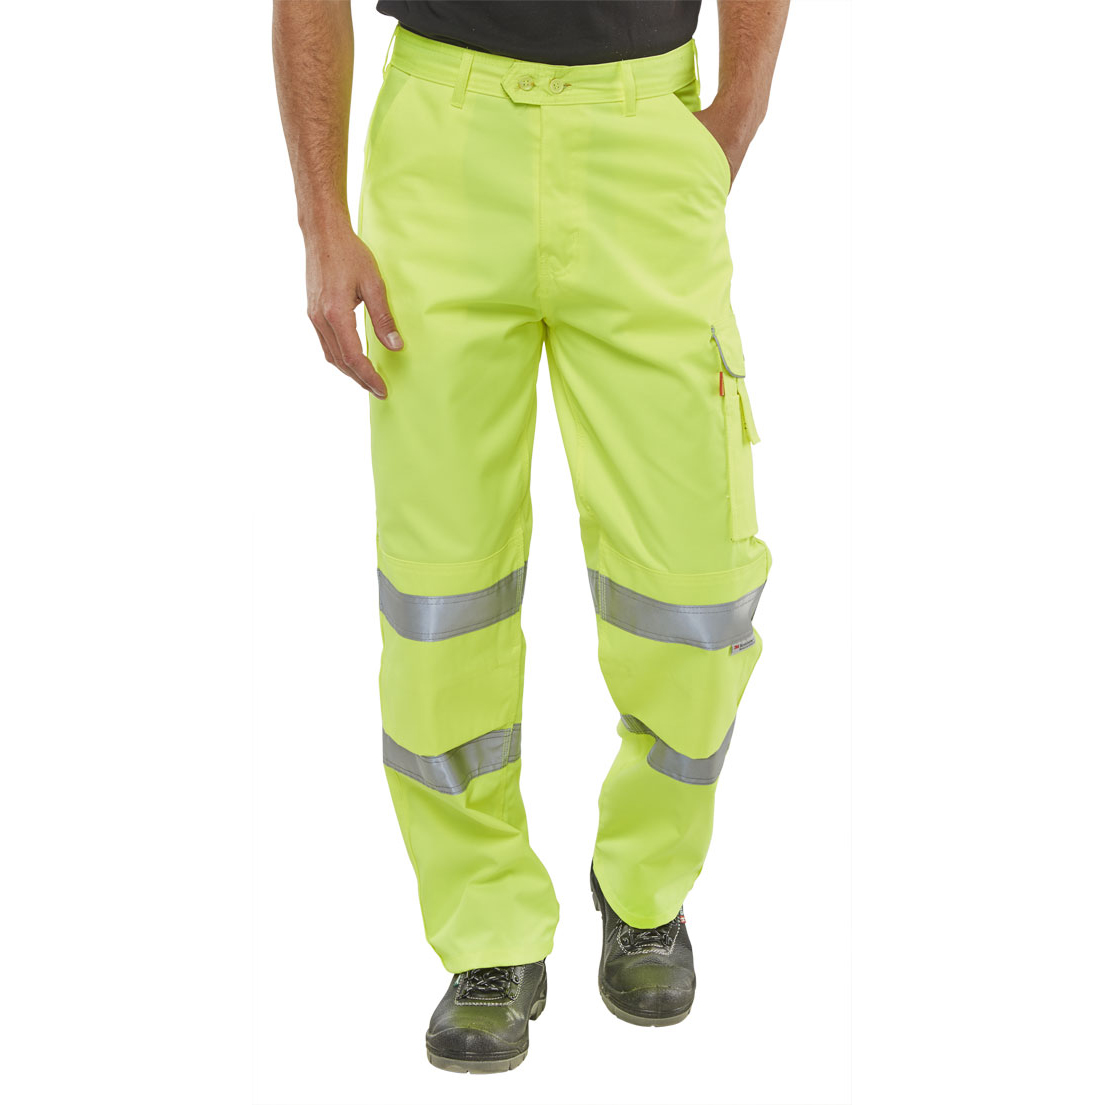 BSeen Trousers Polycotton Hi-Vis EN471 Saturn Yellow 44 Long Ref PCTENSY44T Up to 3 Day Leadtime